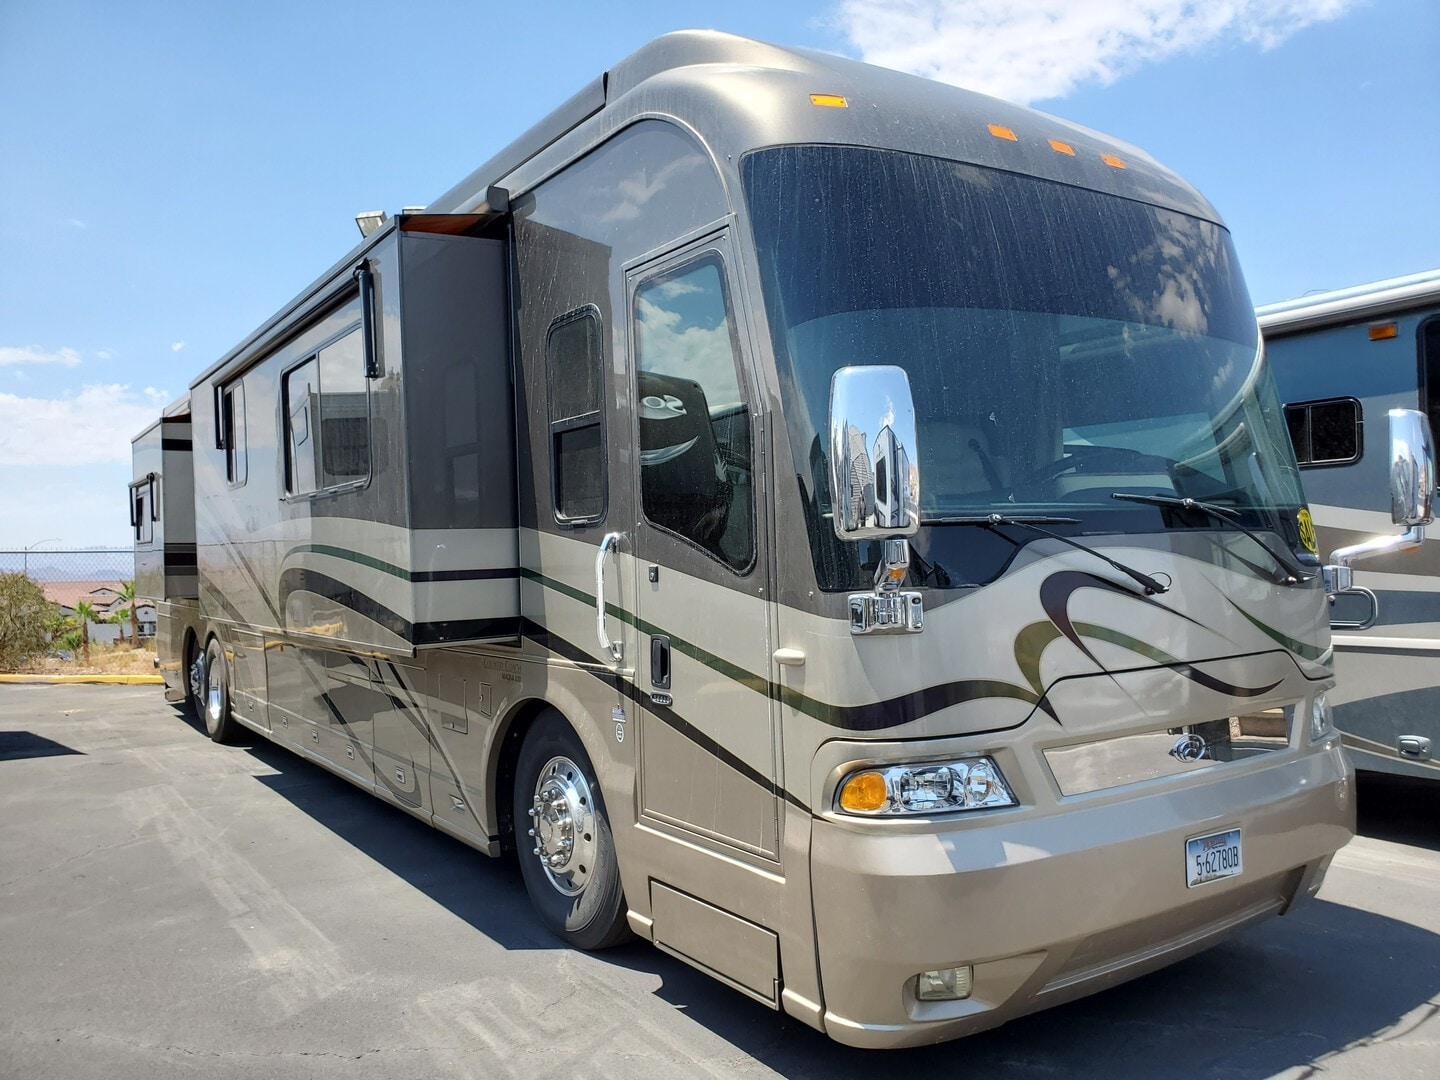 Used, 2005, Country Coach, MAGNA 360, RV - Class A